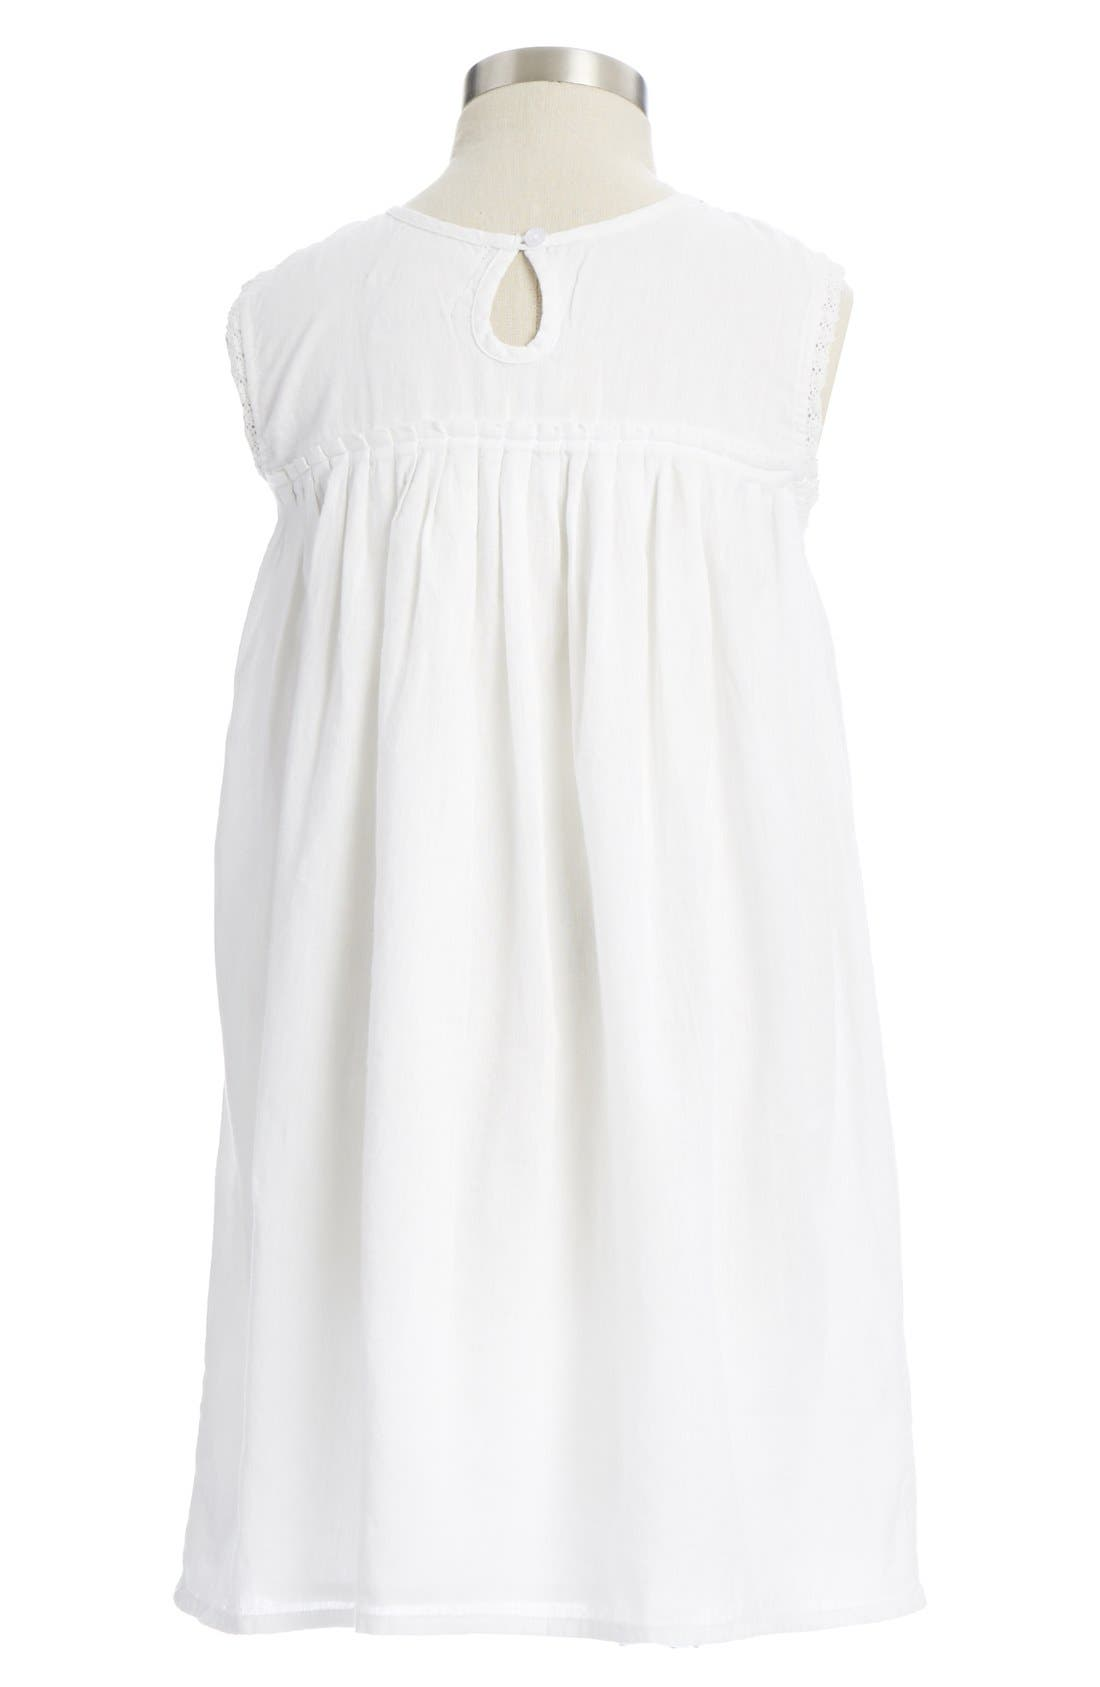 Alternate Image 2  - Peek 'Jamie' Embroidered Cotton Dress (Toddler Girls, Little Girls & Big Girls)